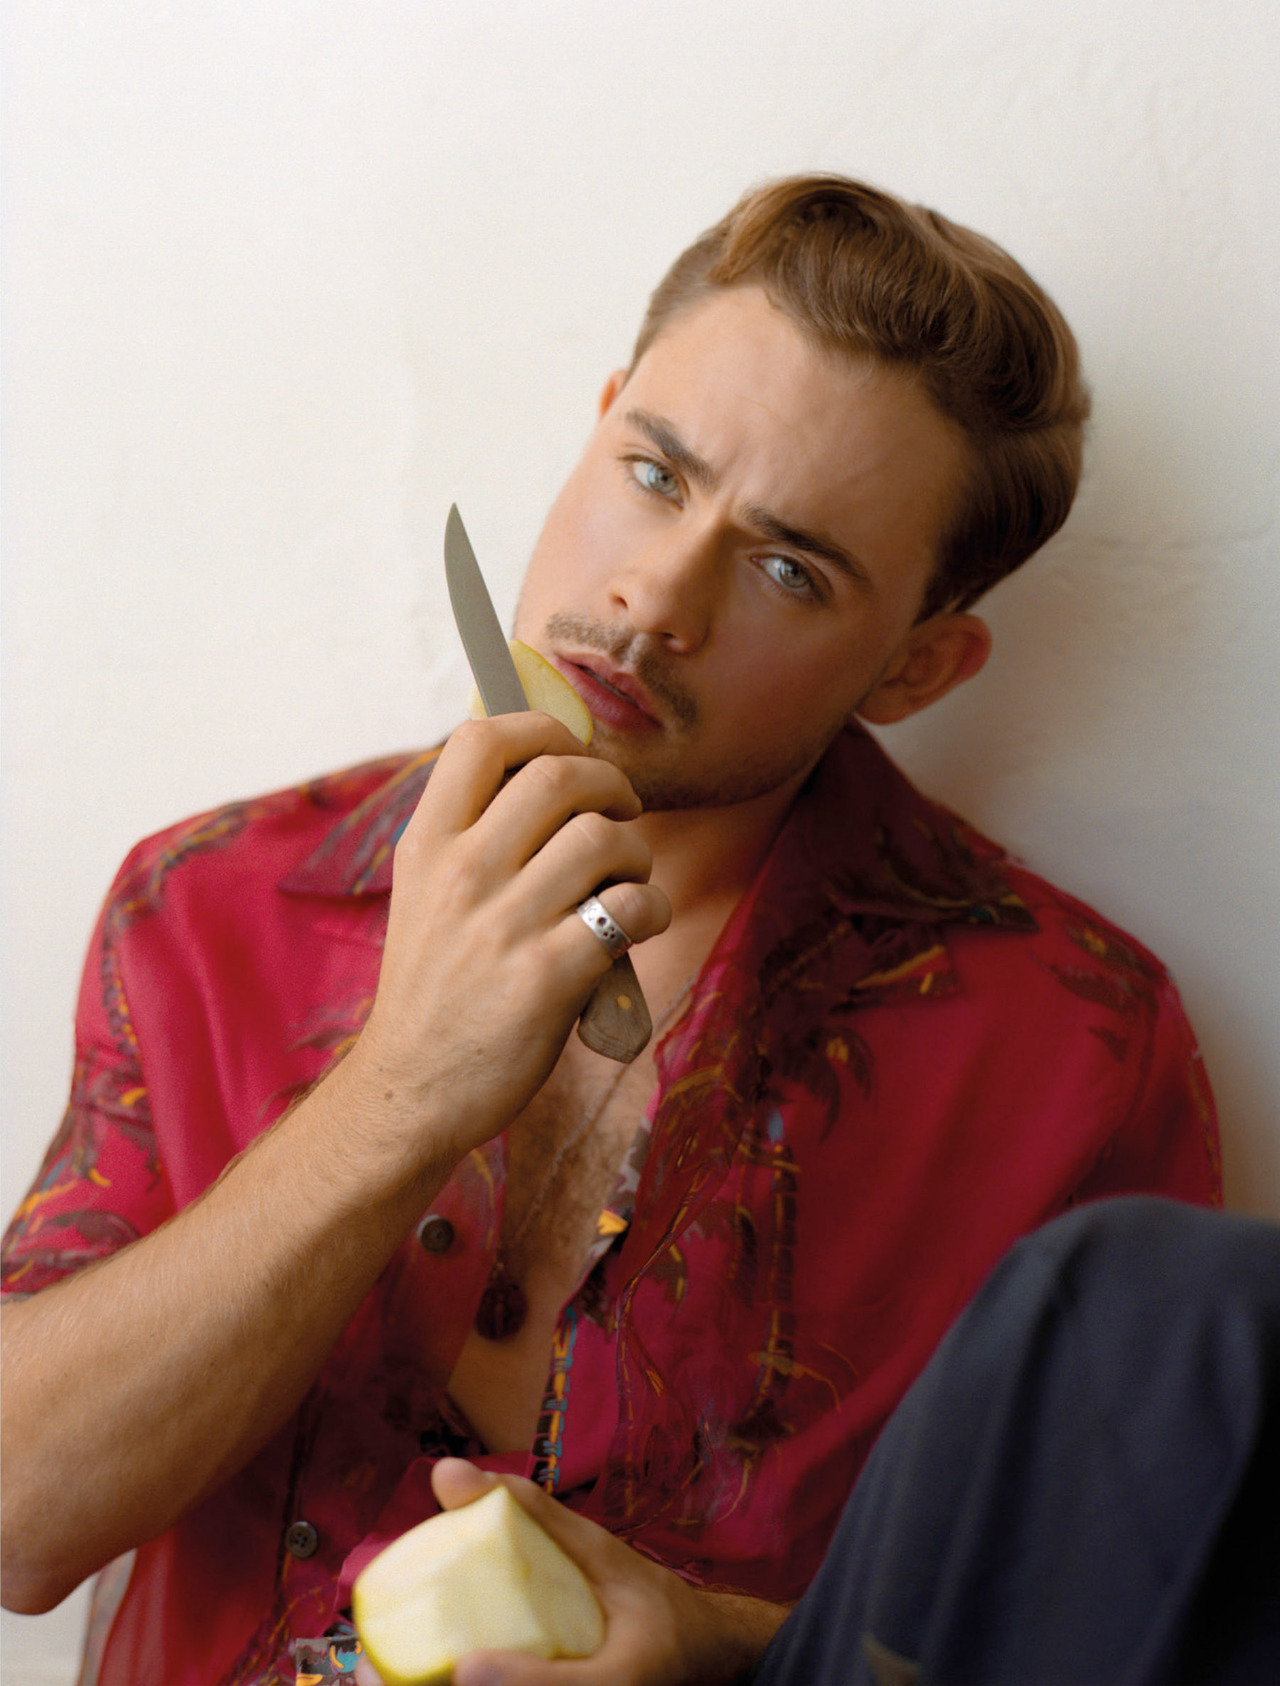 2018-06-14 13:14:15 - meninvogue dacre montgomery photographed by gaygeekgif https://www.neofic.com